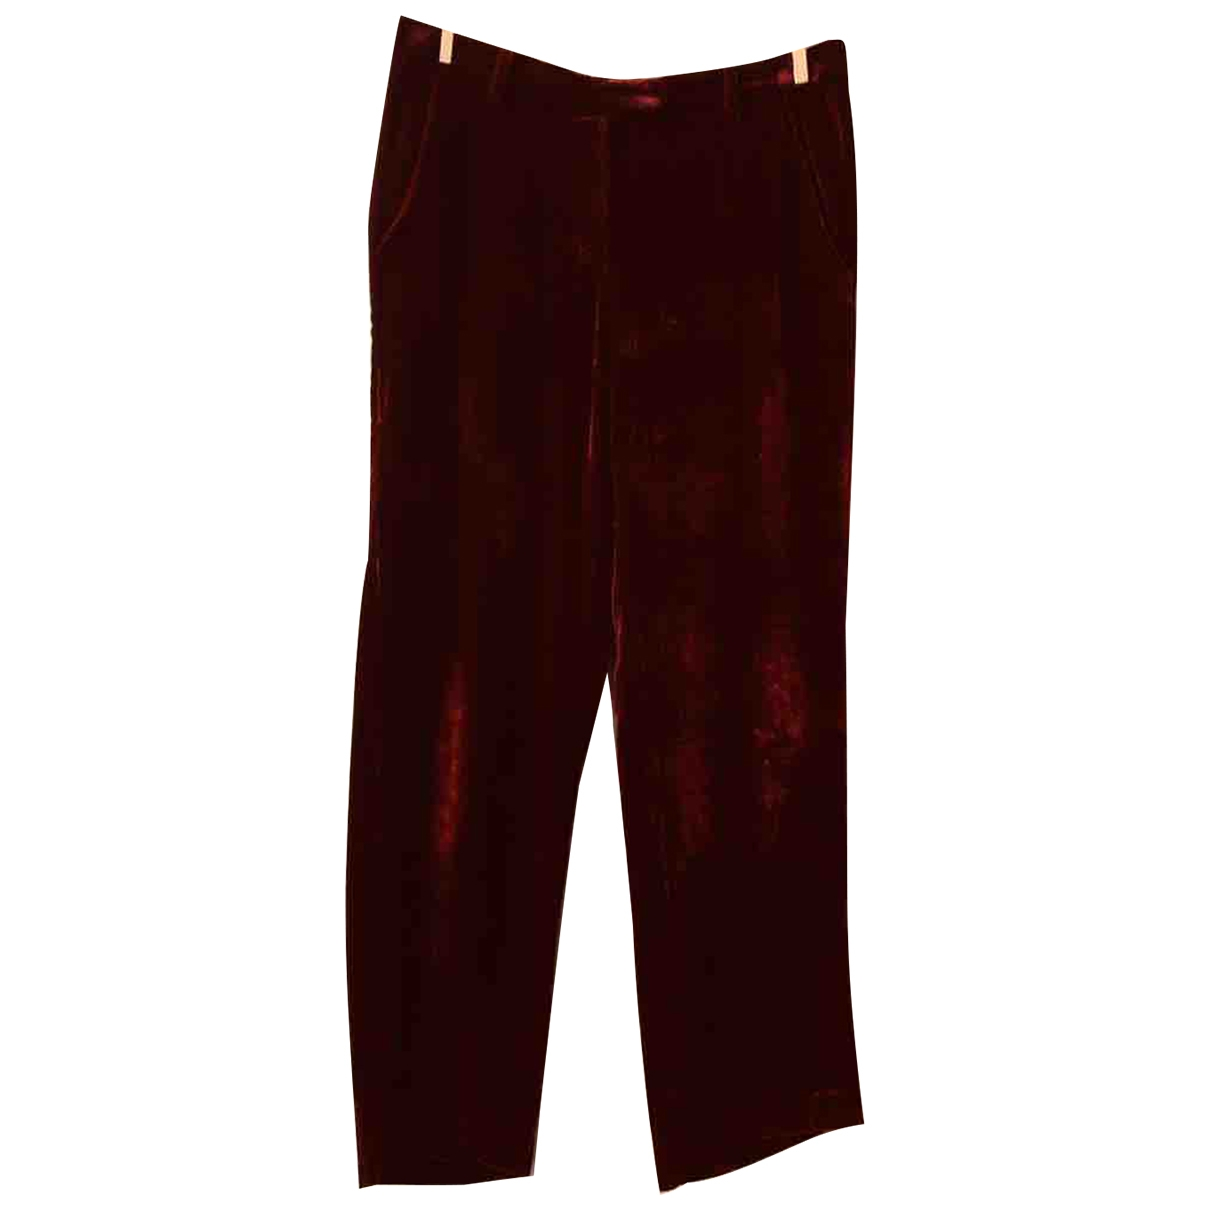 Masscob \N Burgundy Velvet Trousers for Women 36 FR